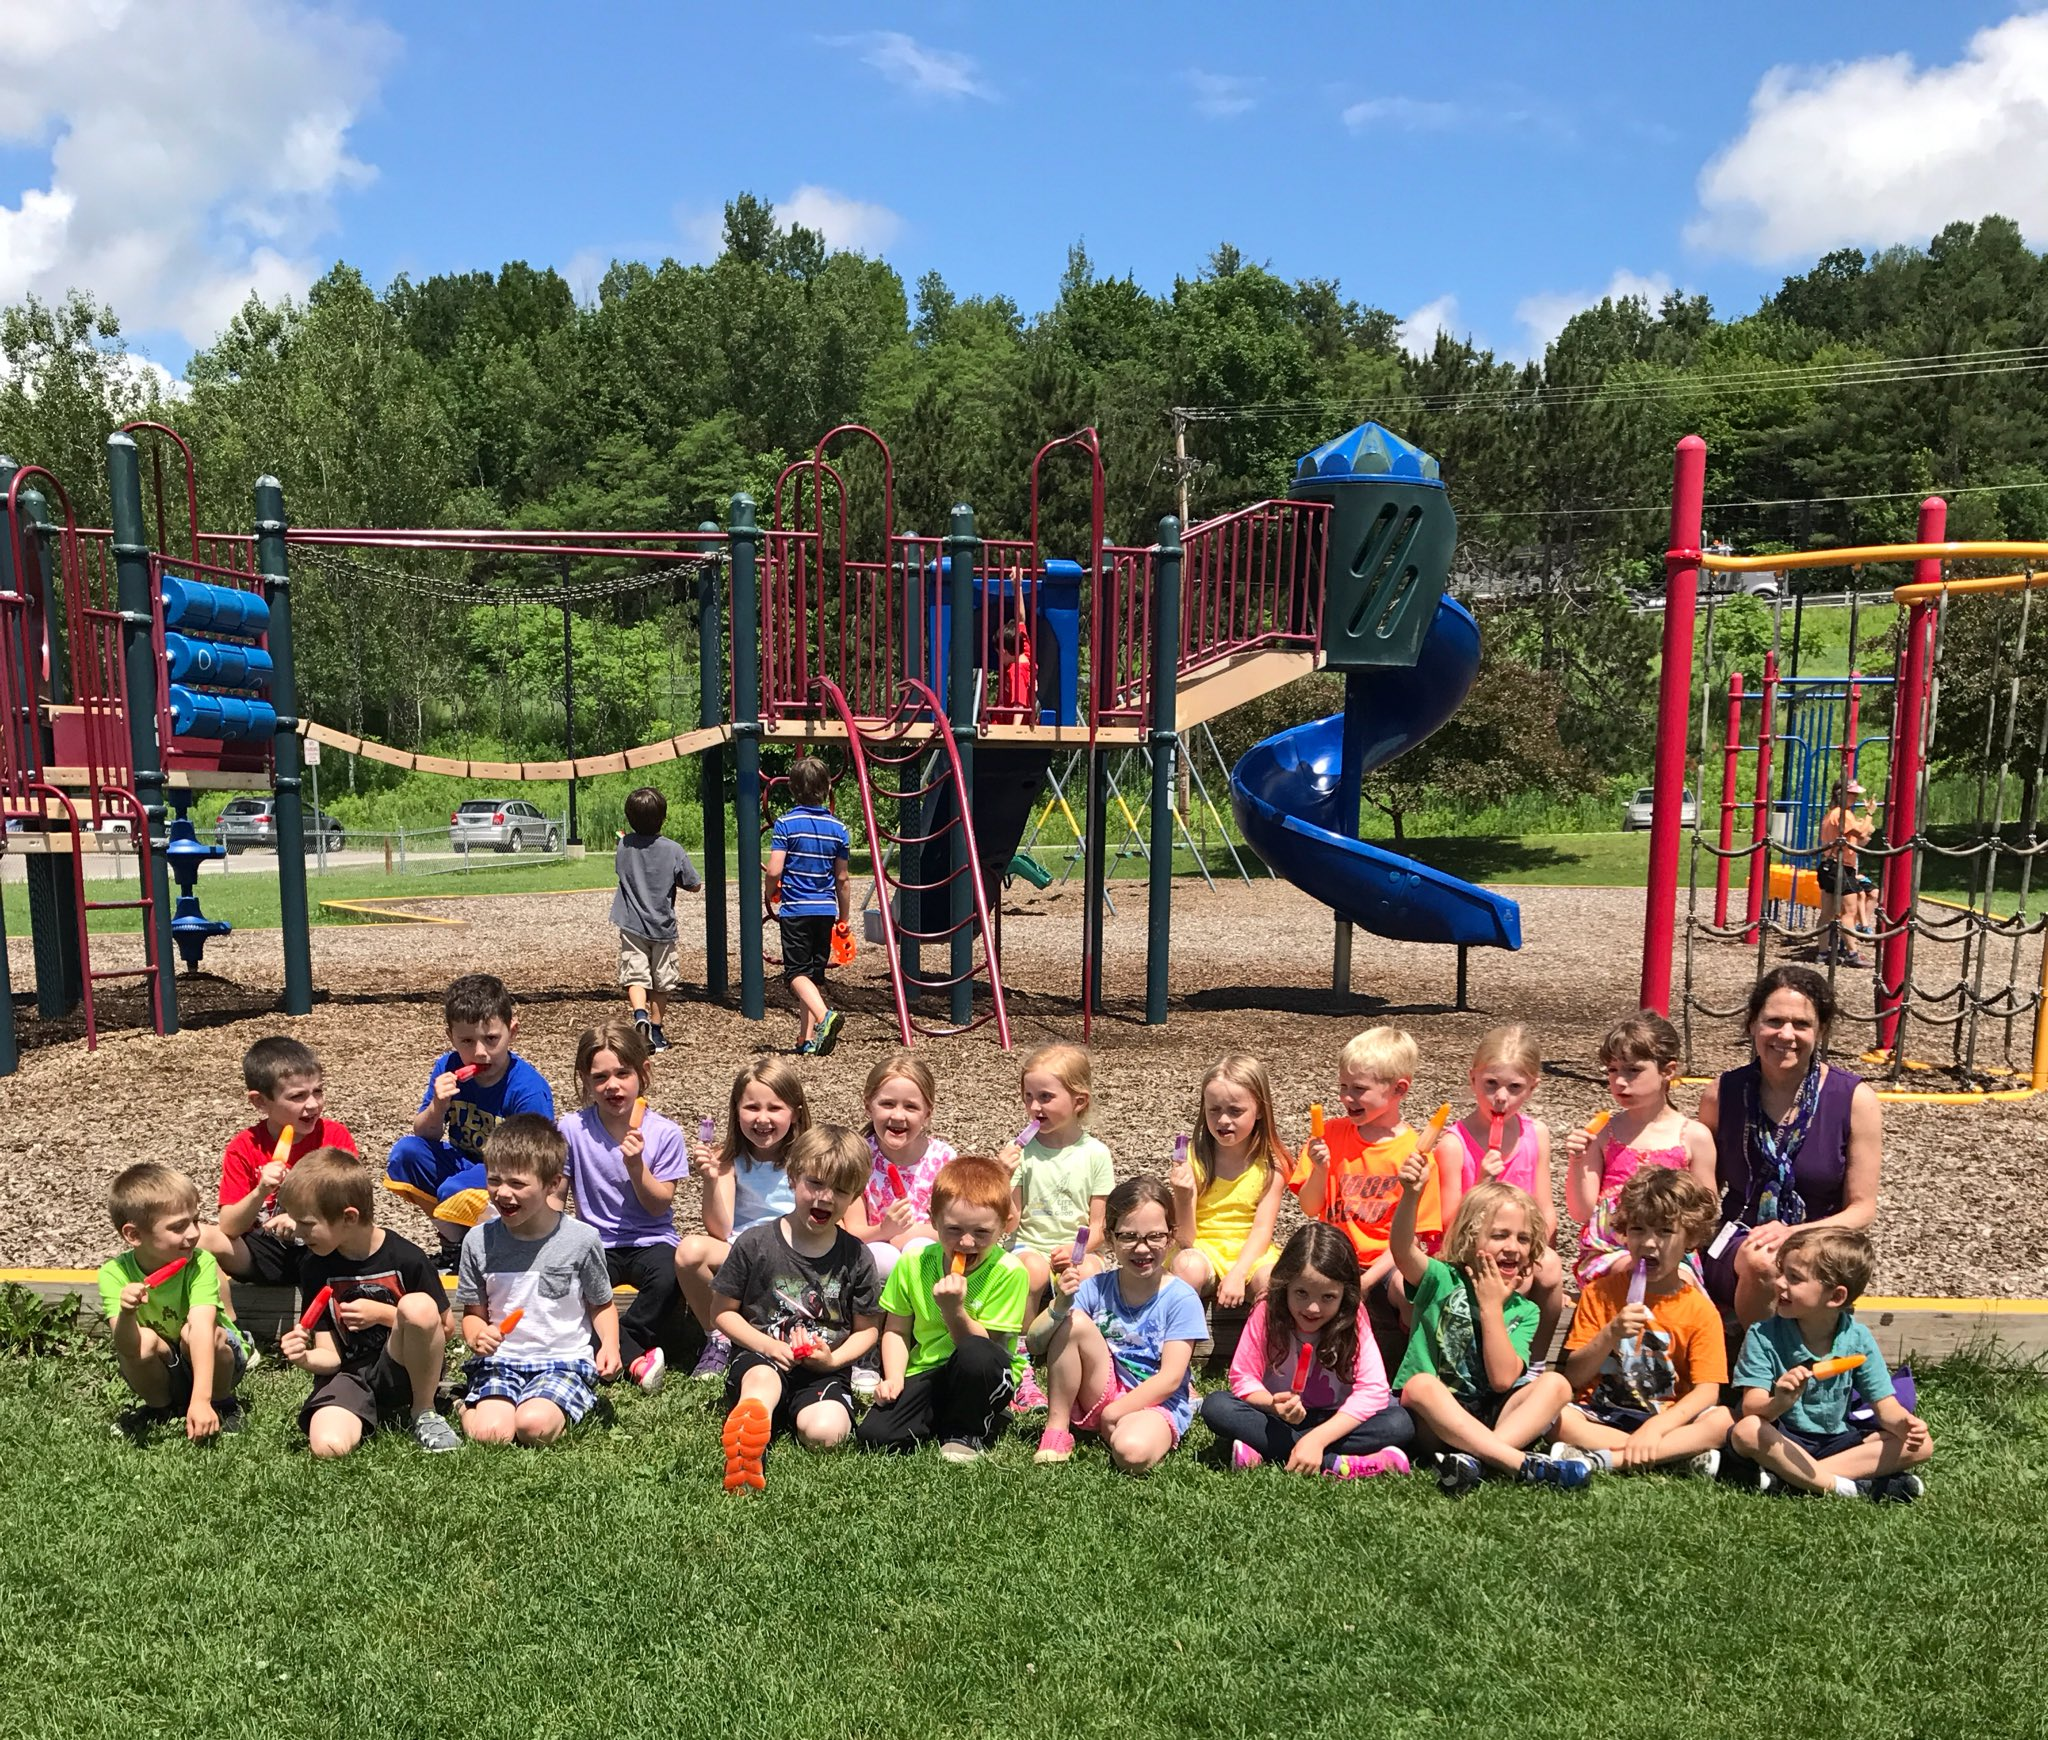 image of a group of students posing in front of the playground